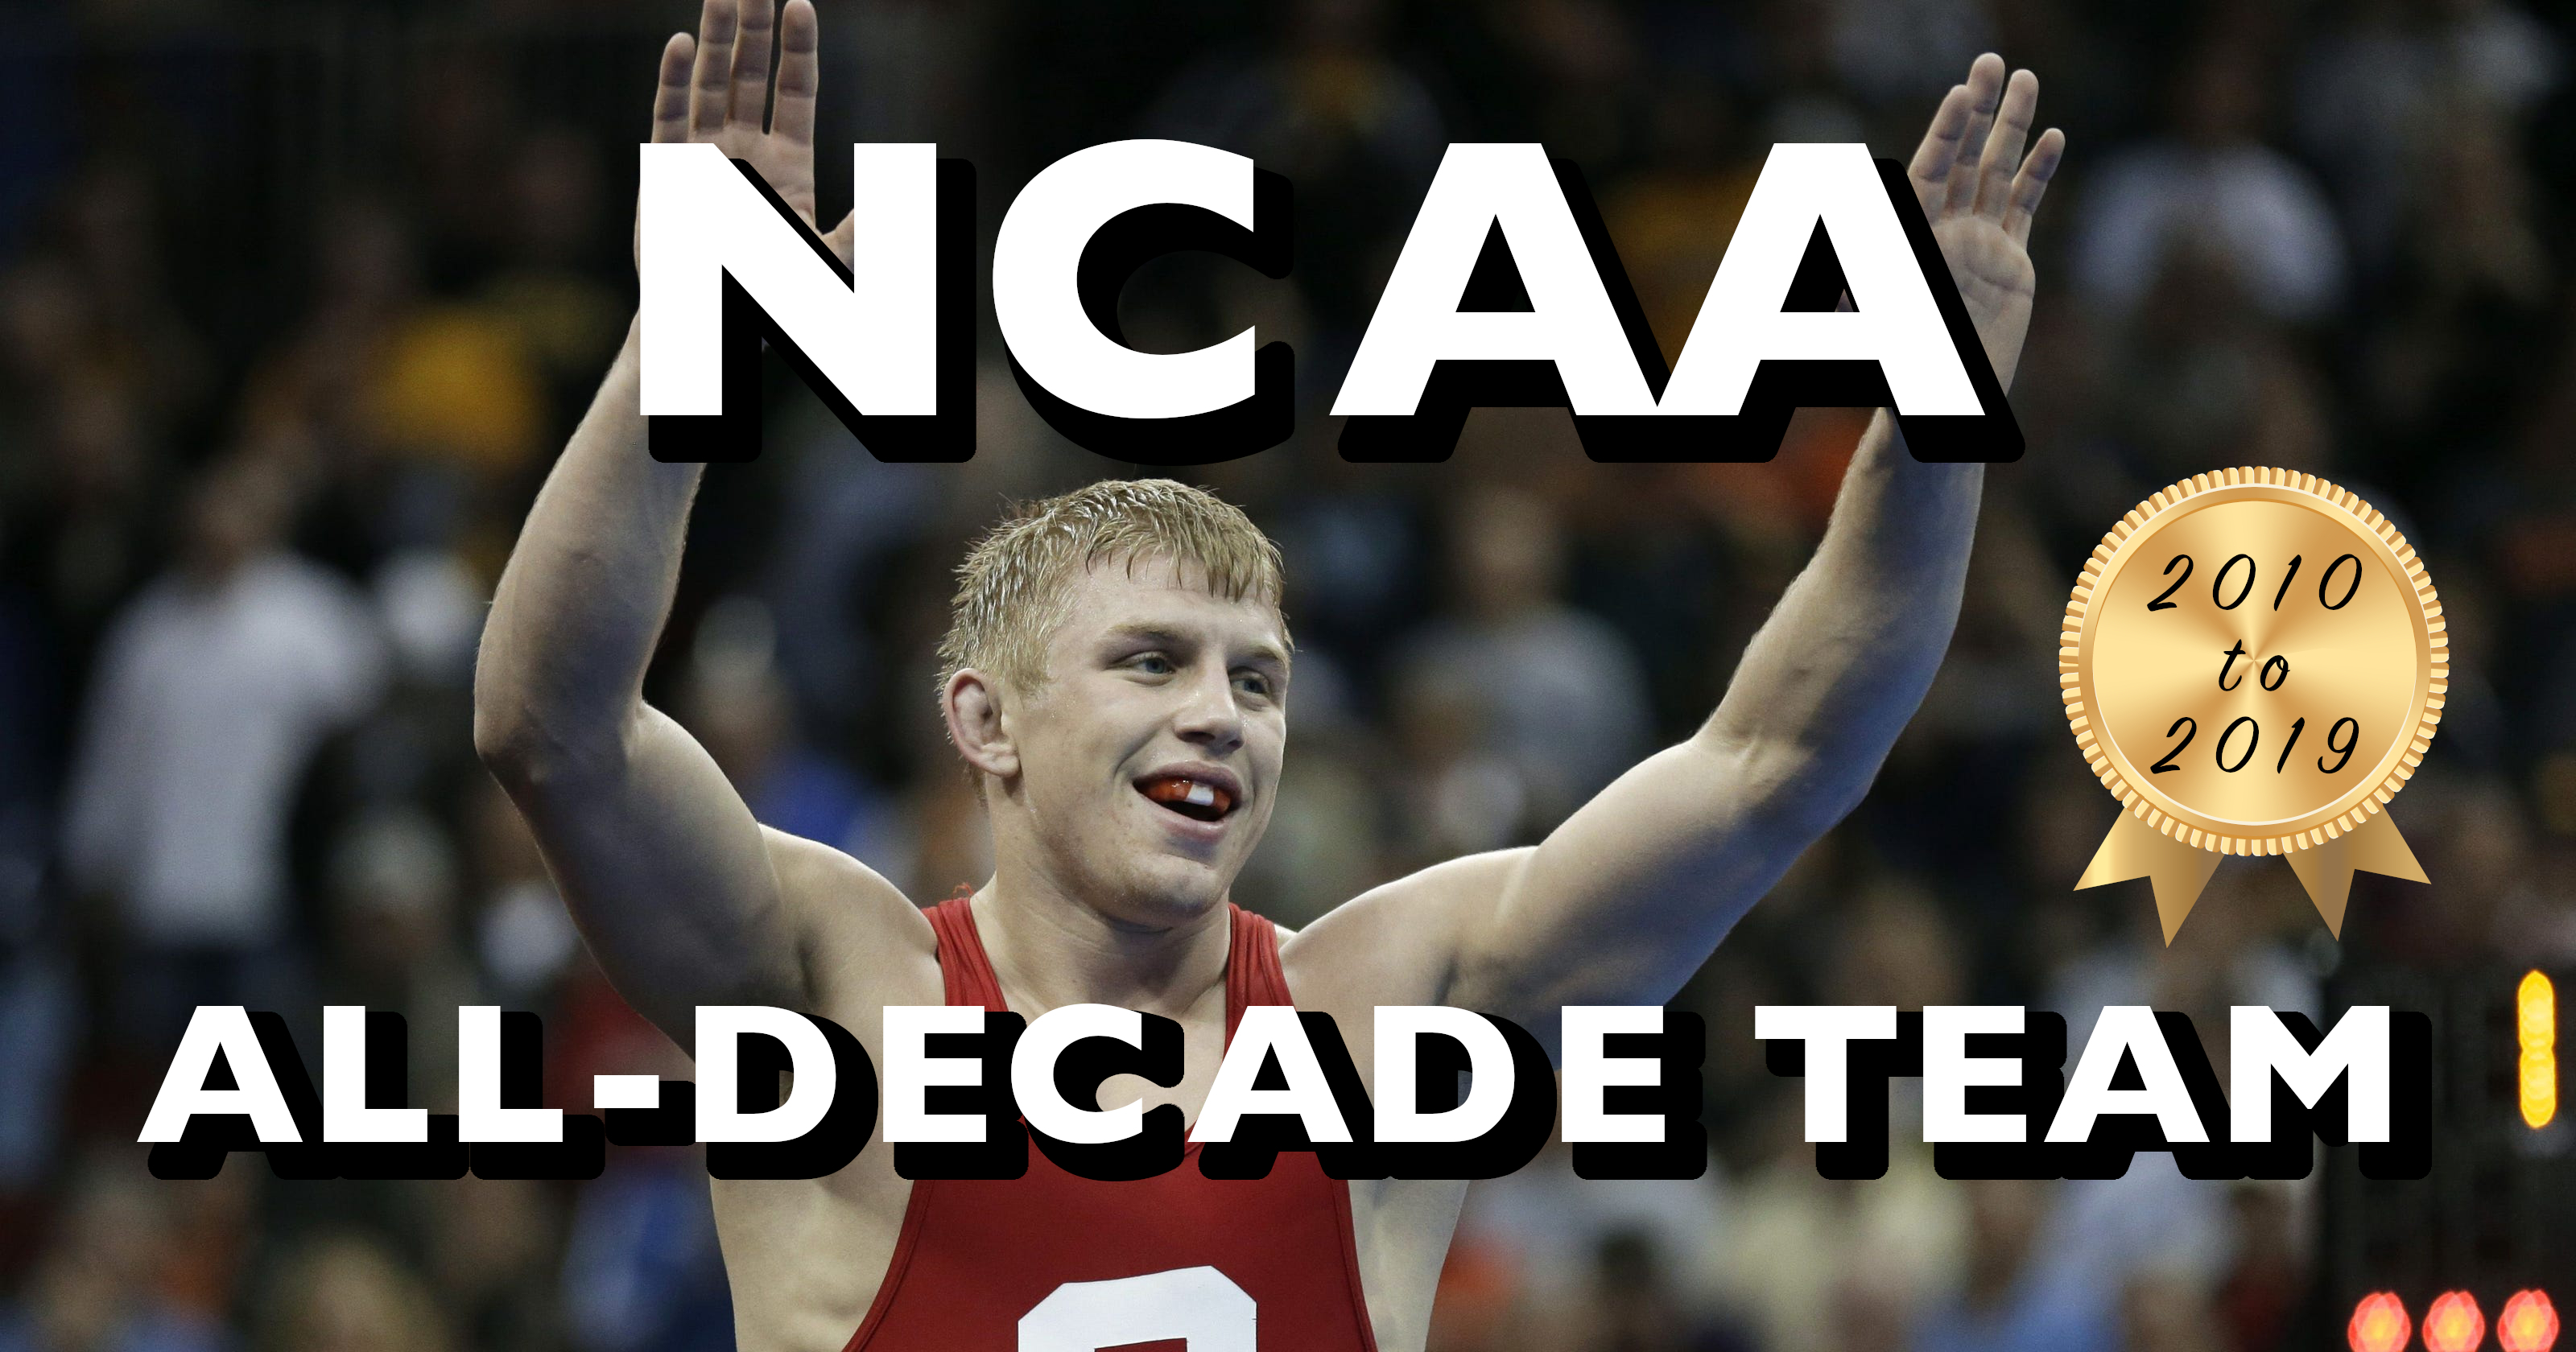 ncaa-all-decade.jpg